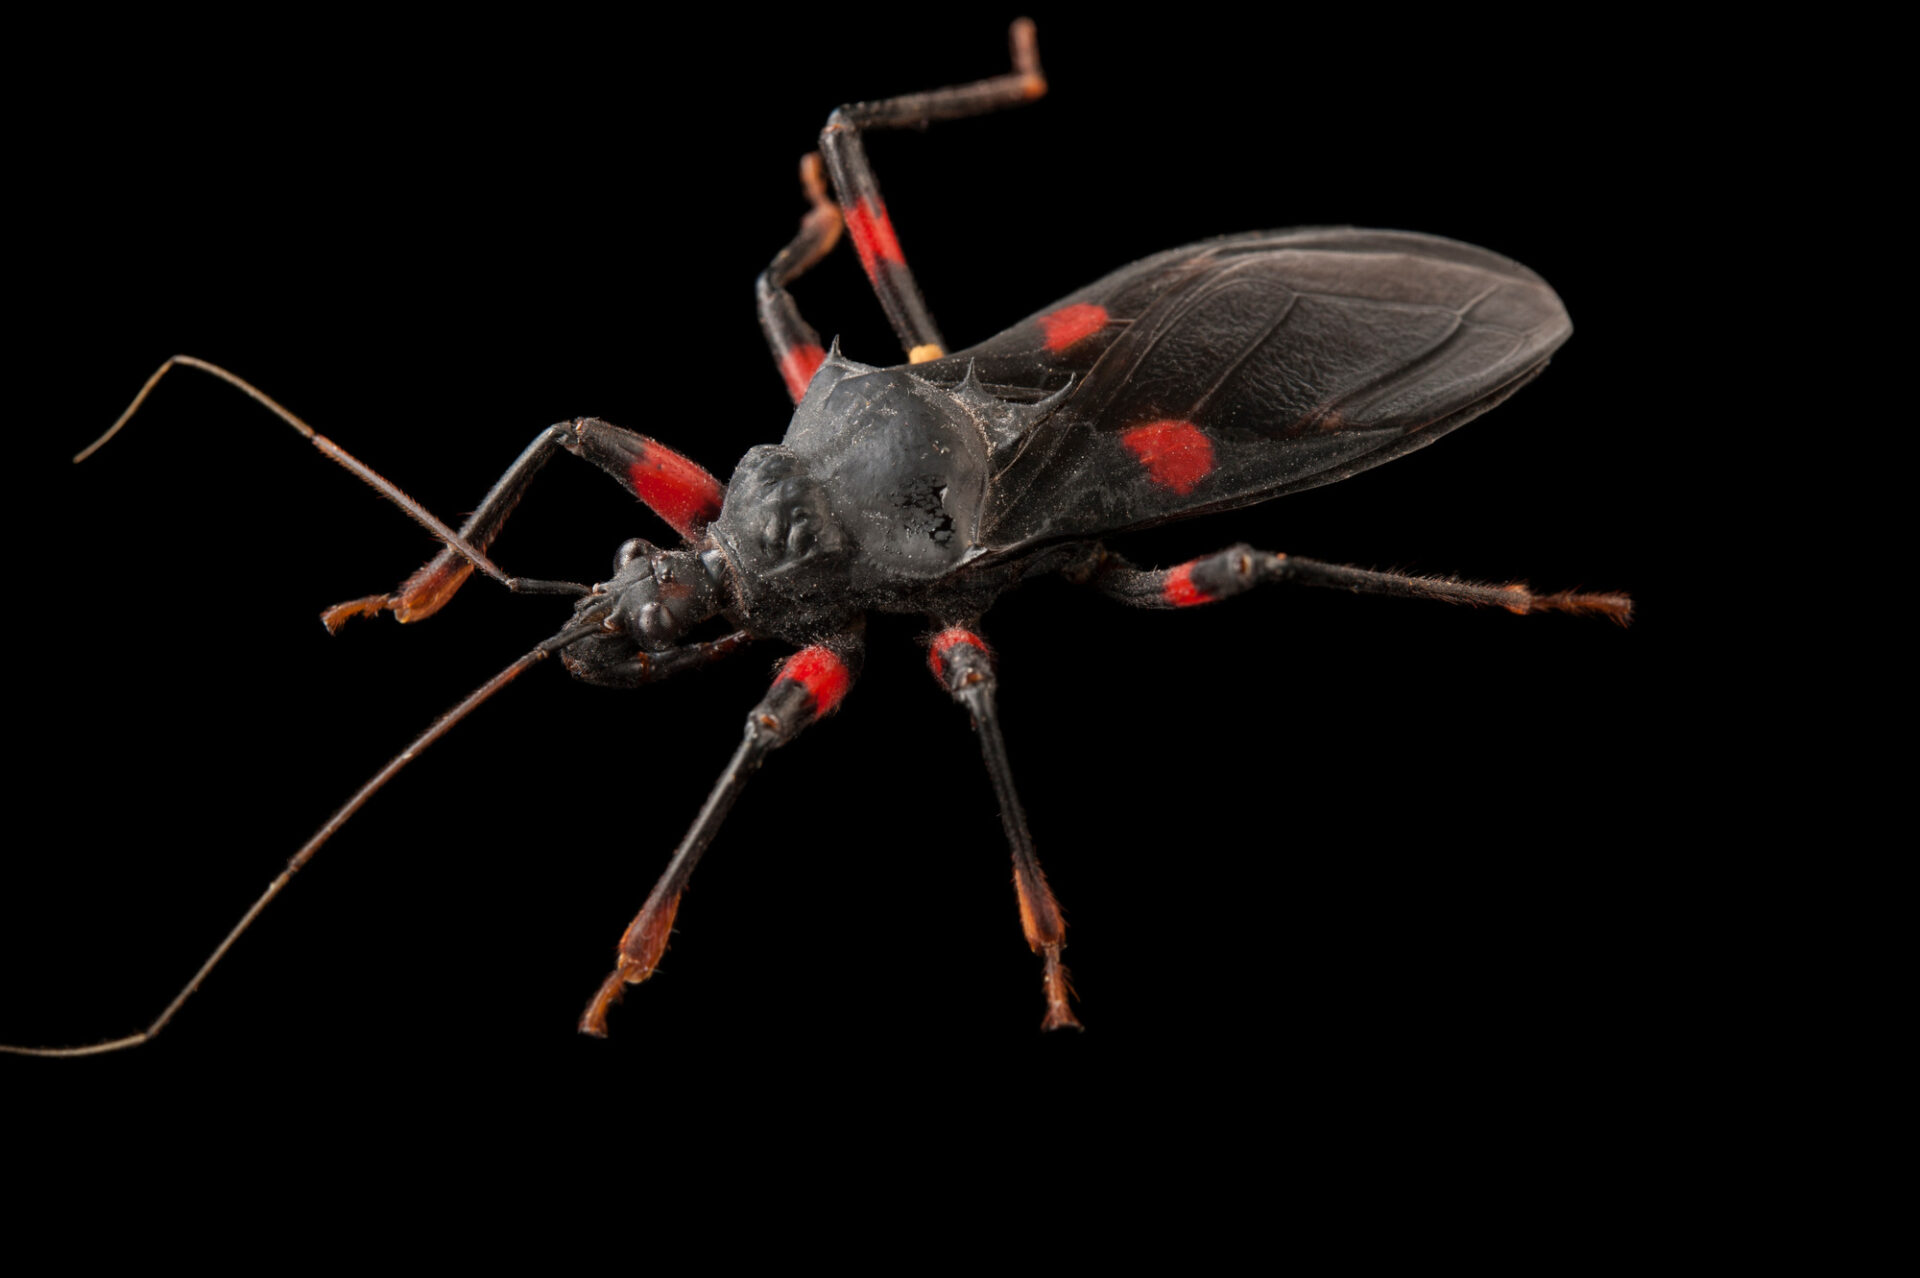 Photo: A red-spotted assasin bug (Platymeris rhadamanthus) at the Audubon Insectarium in New Orleans.